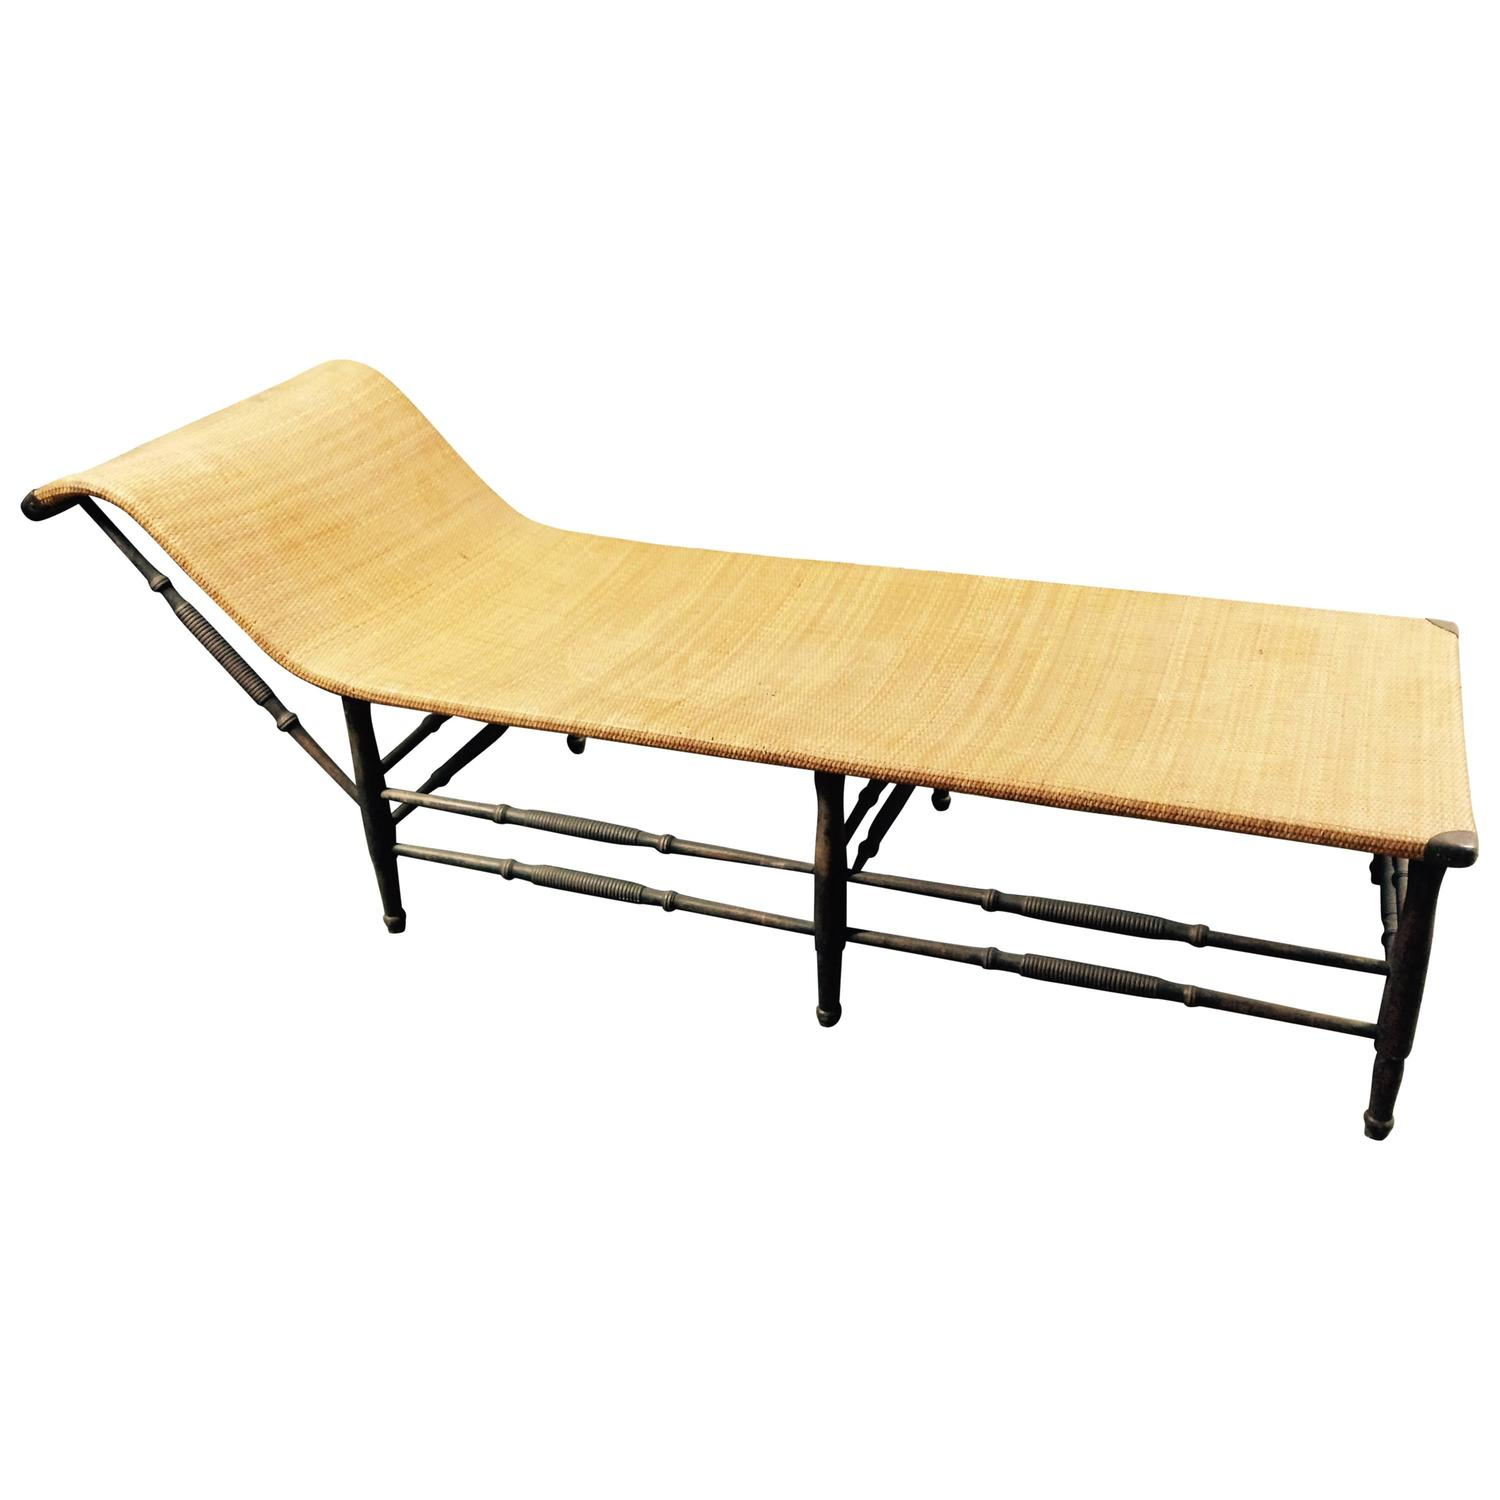 Antique rattan chaise longue for sale at 1stdibs - Antique chaise longue ...